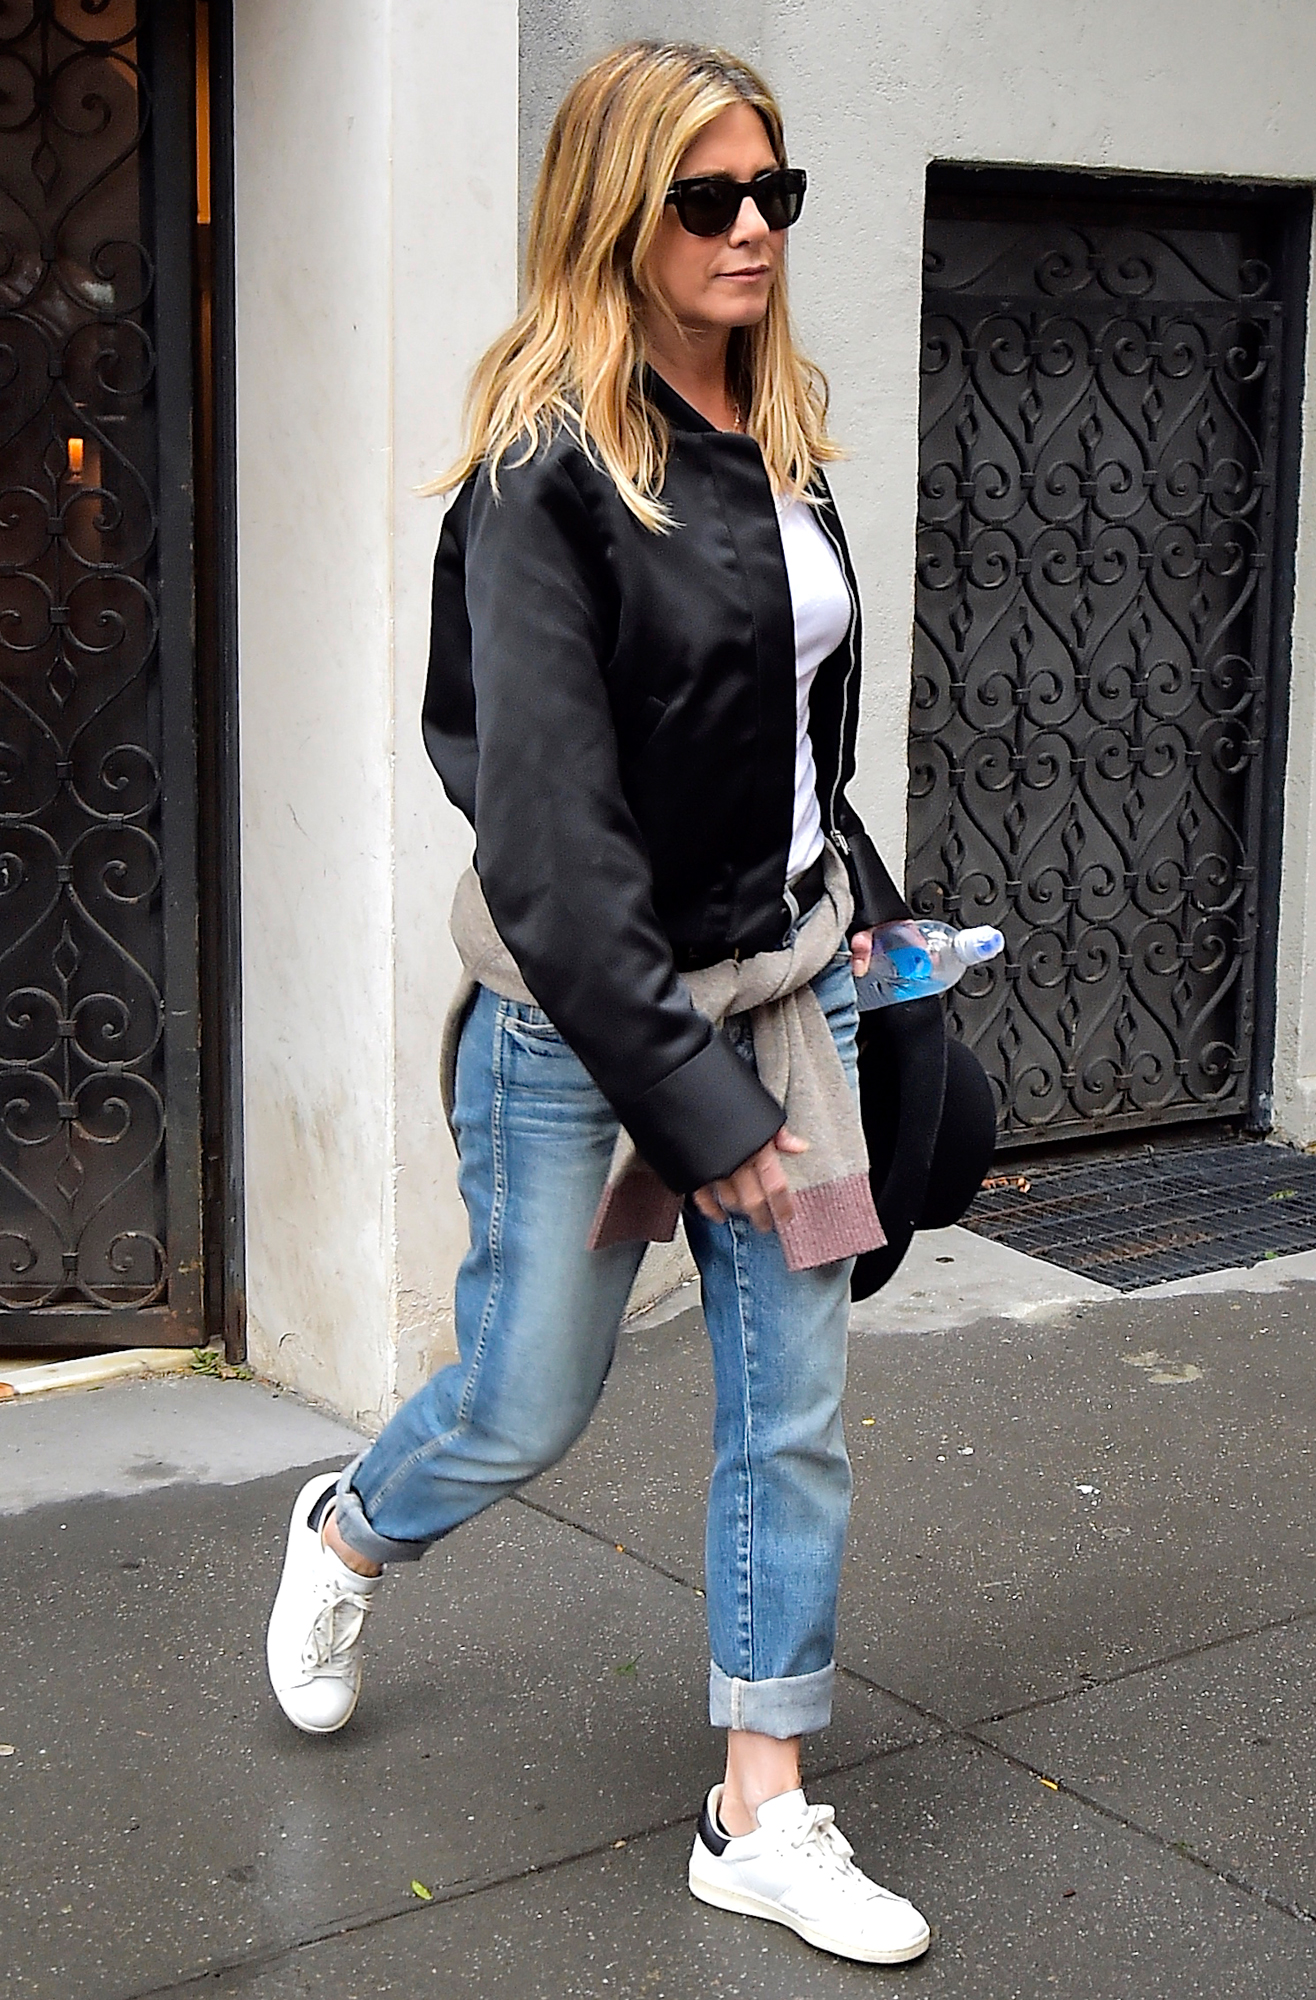 Jennifer Aniston Gives Autumn Style Vibes in a Satin Bomber Jacket and Rolled Up Jeans